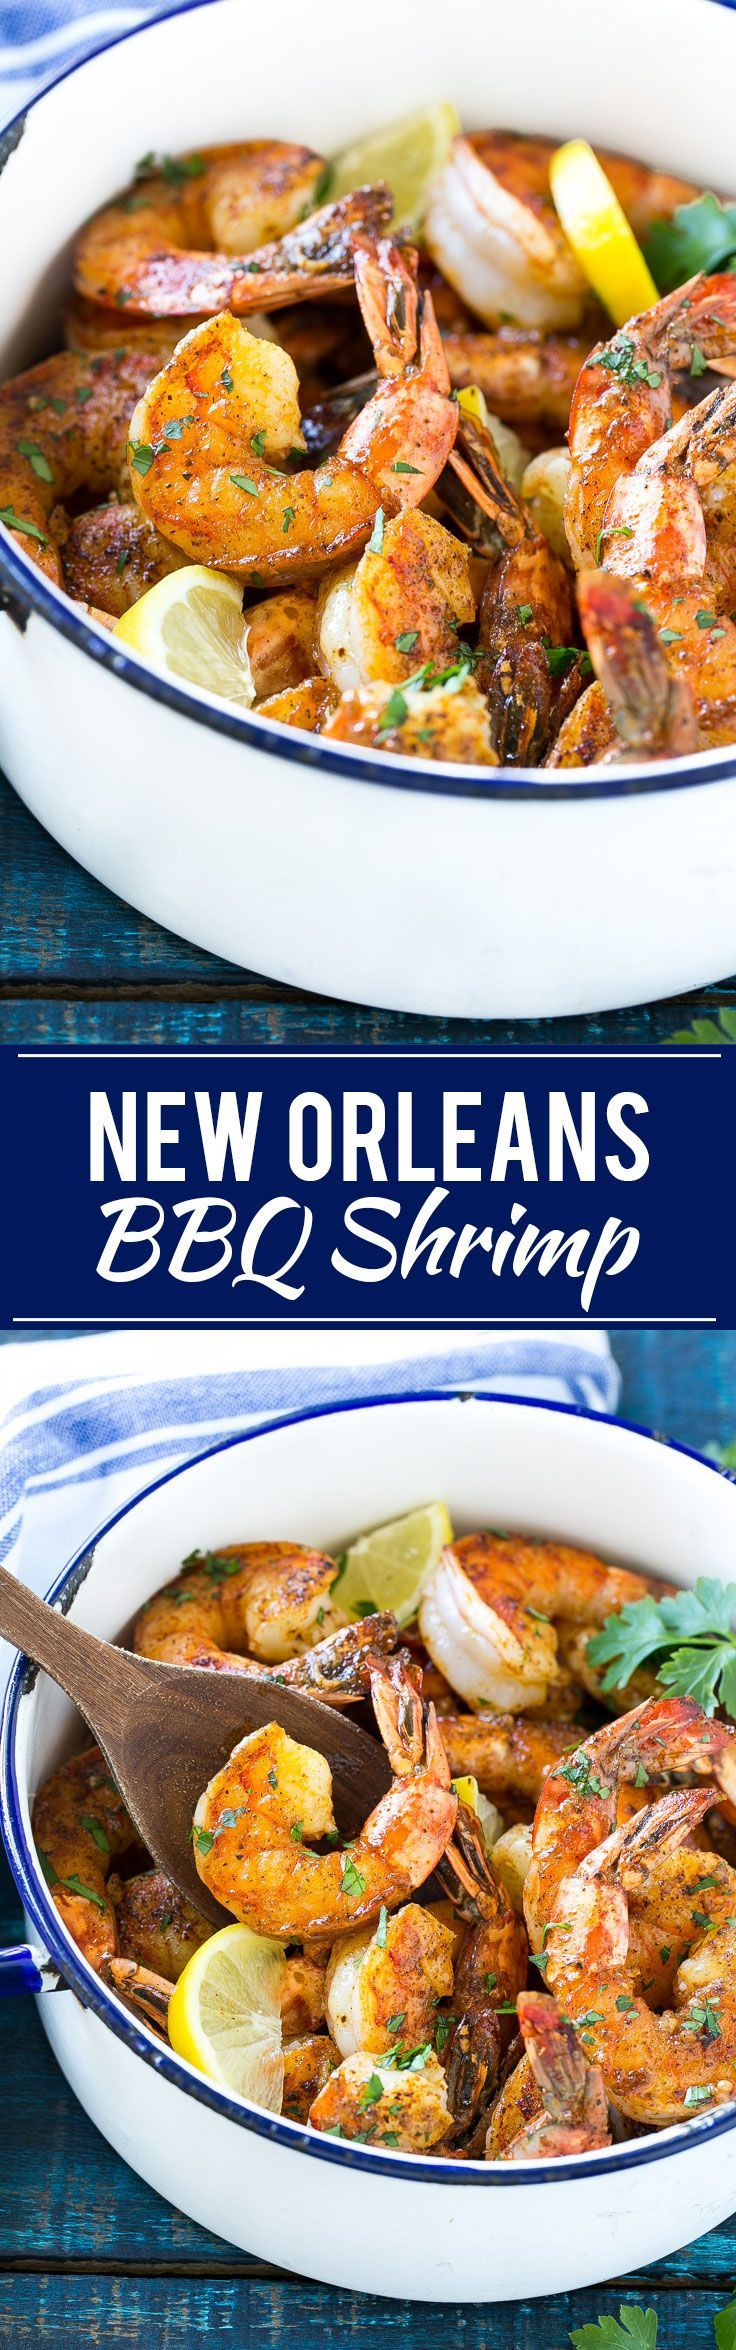 """New Orleans BBQ shrimp  Recipe! YUM!! """"This recipe for New Orleans BBQ shrimp is tender and succulent shrimp cooked in a bold and zesty sauce - full of flavor and easy to make!"""" #shrimp #bbq #seafood"""